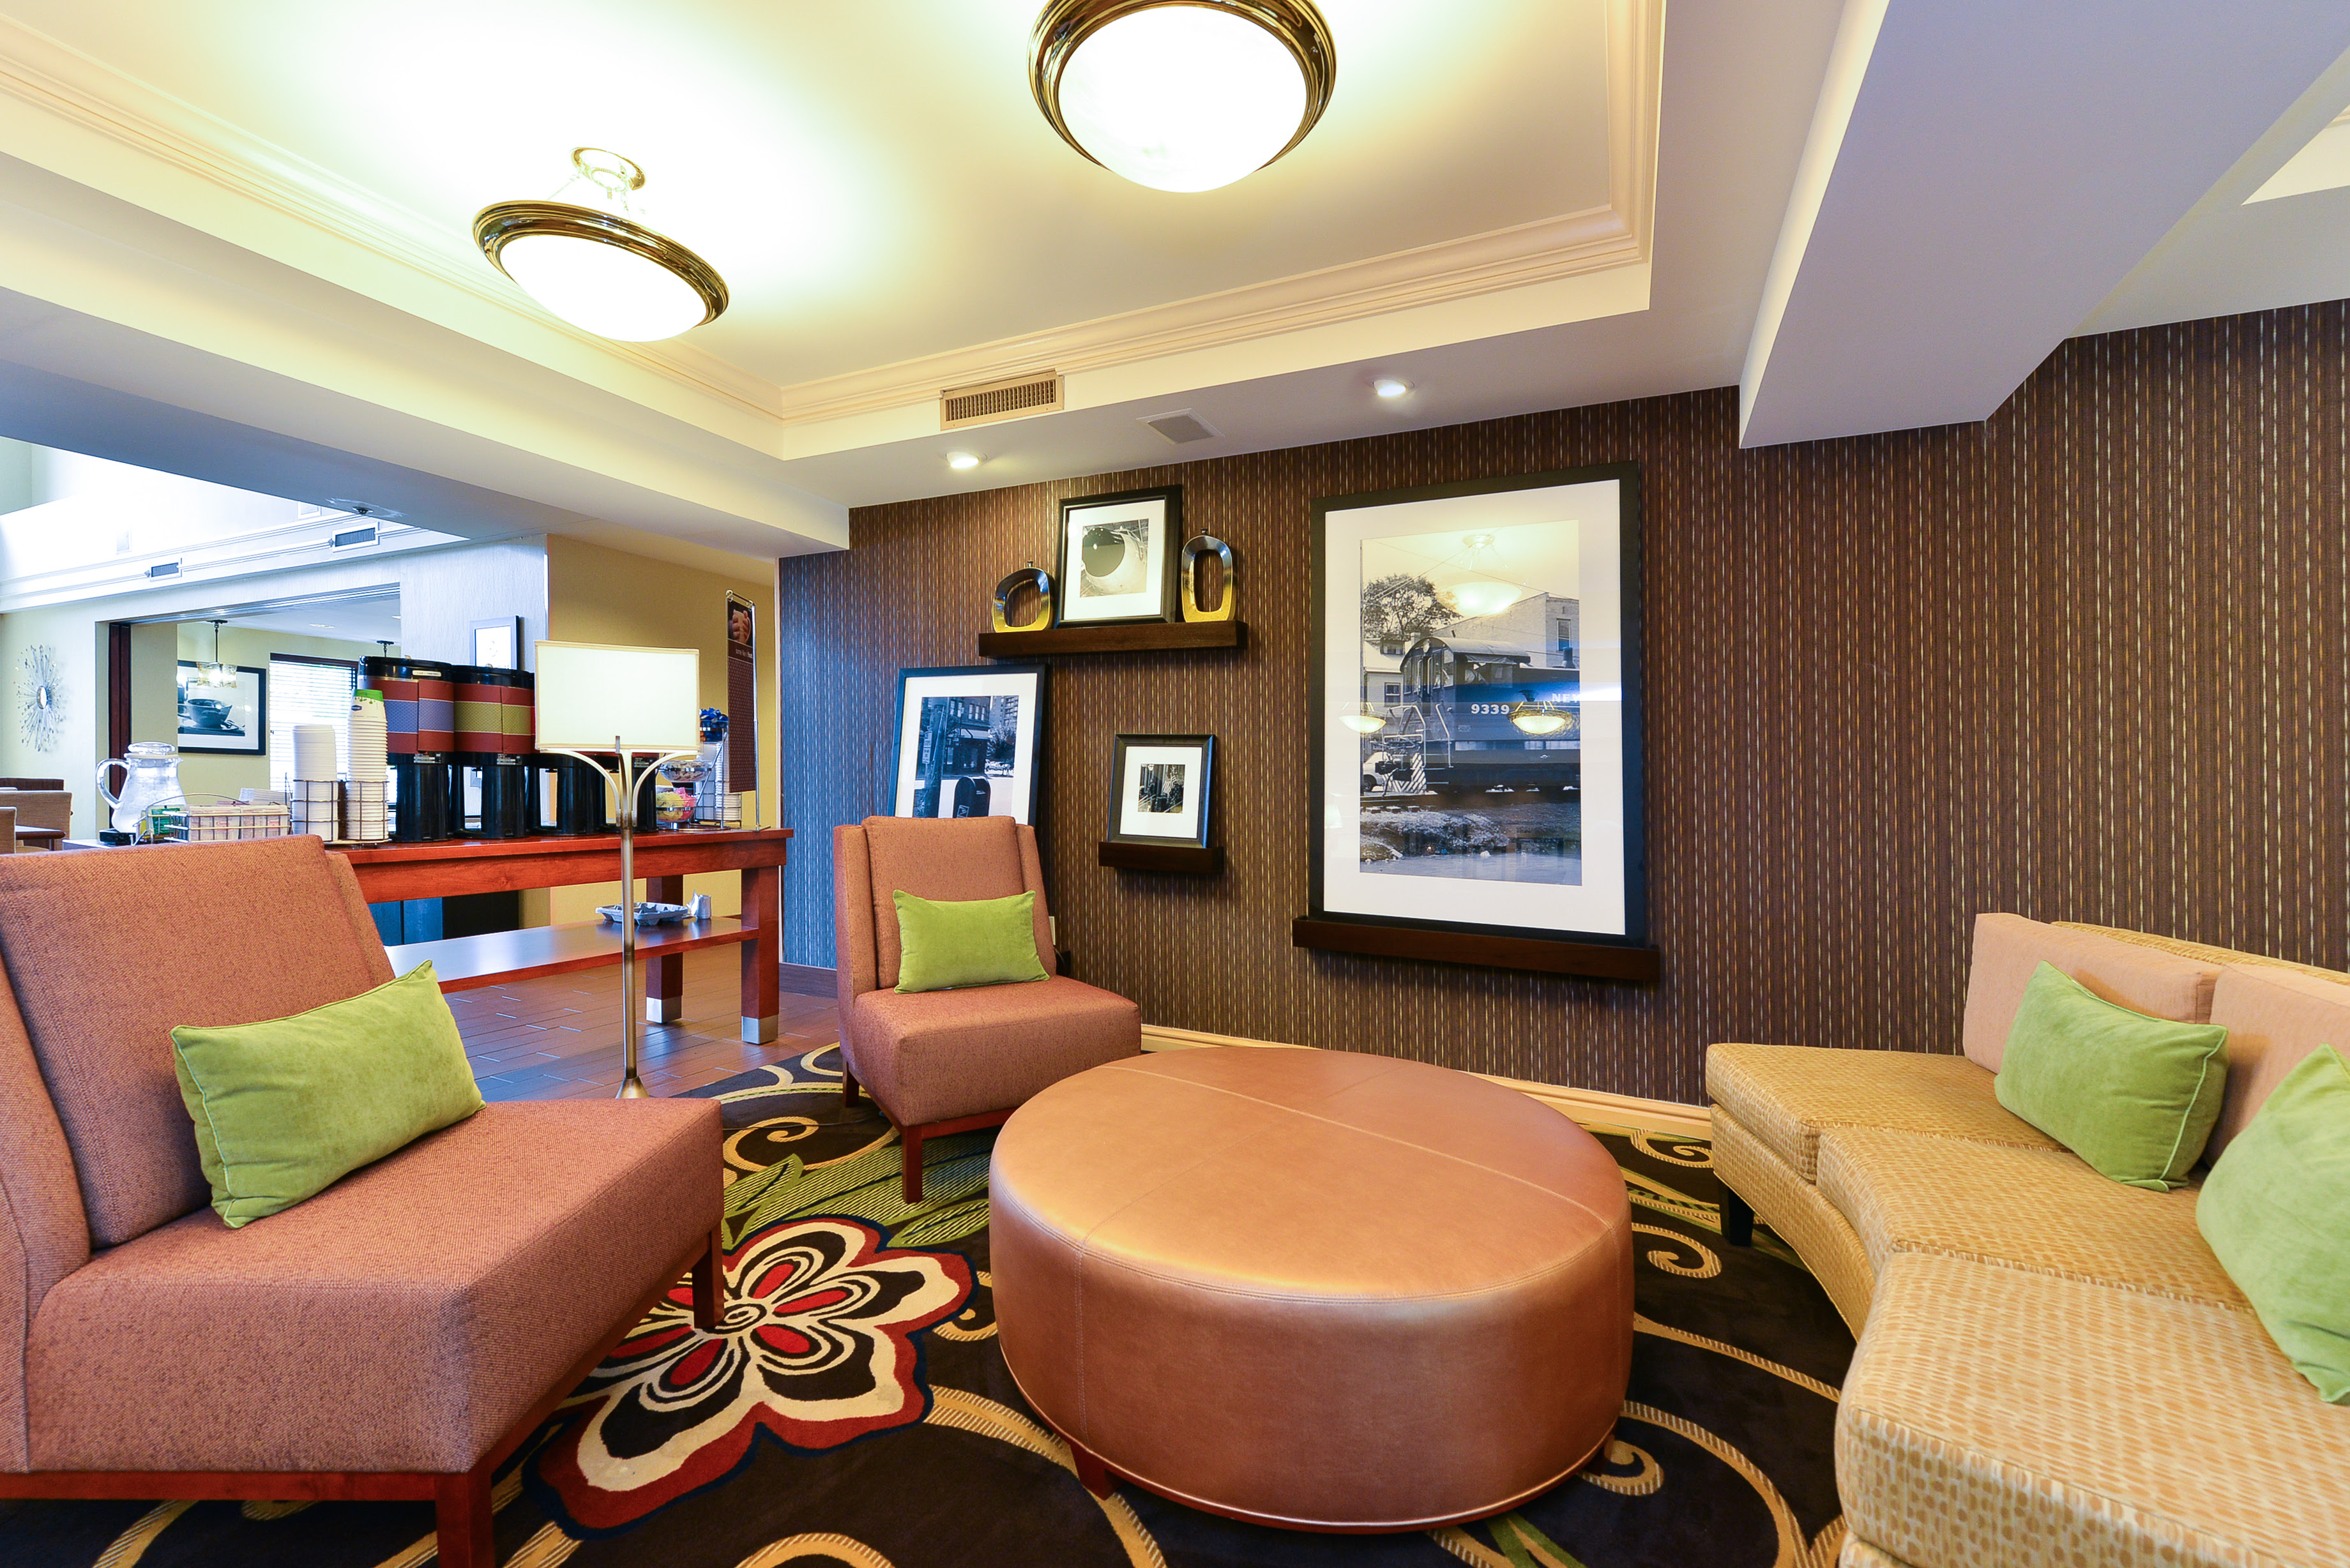 Synergy Hospitality to operate the Hampton Inn & Suites Valley Forge ...